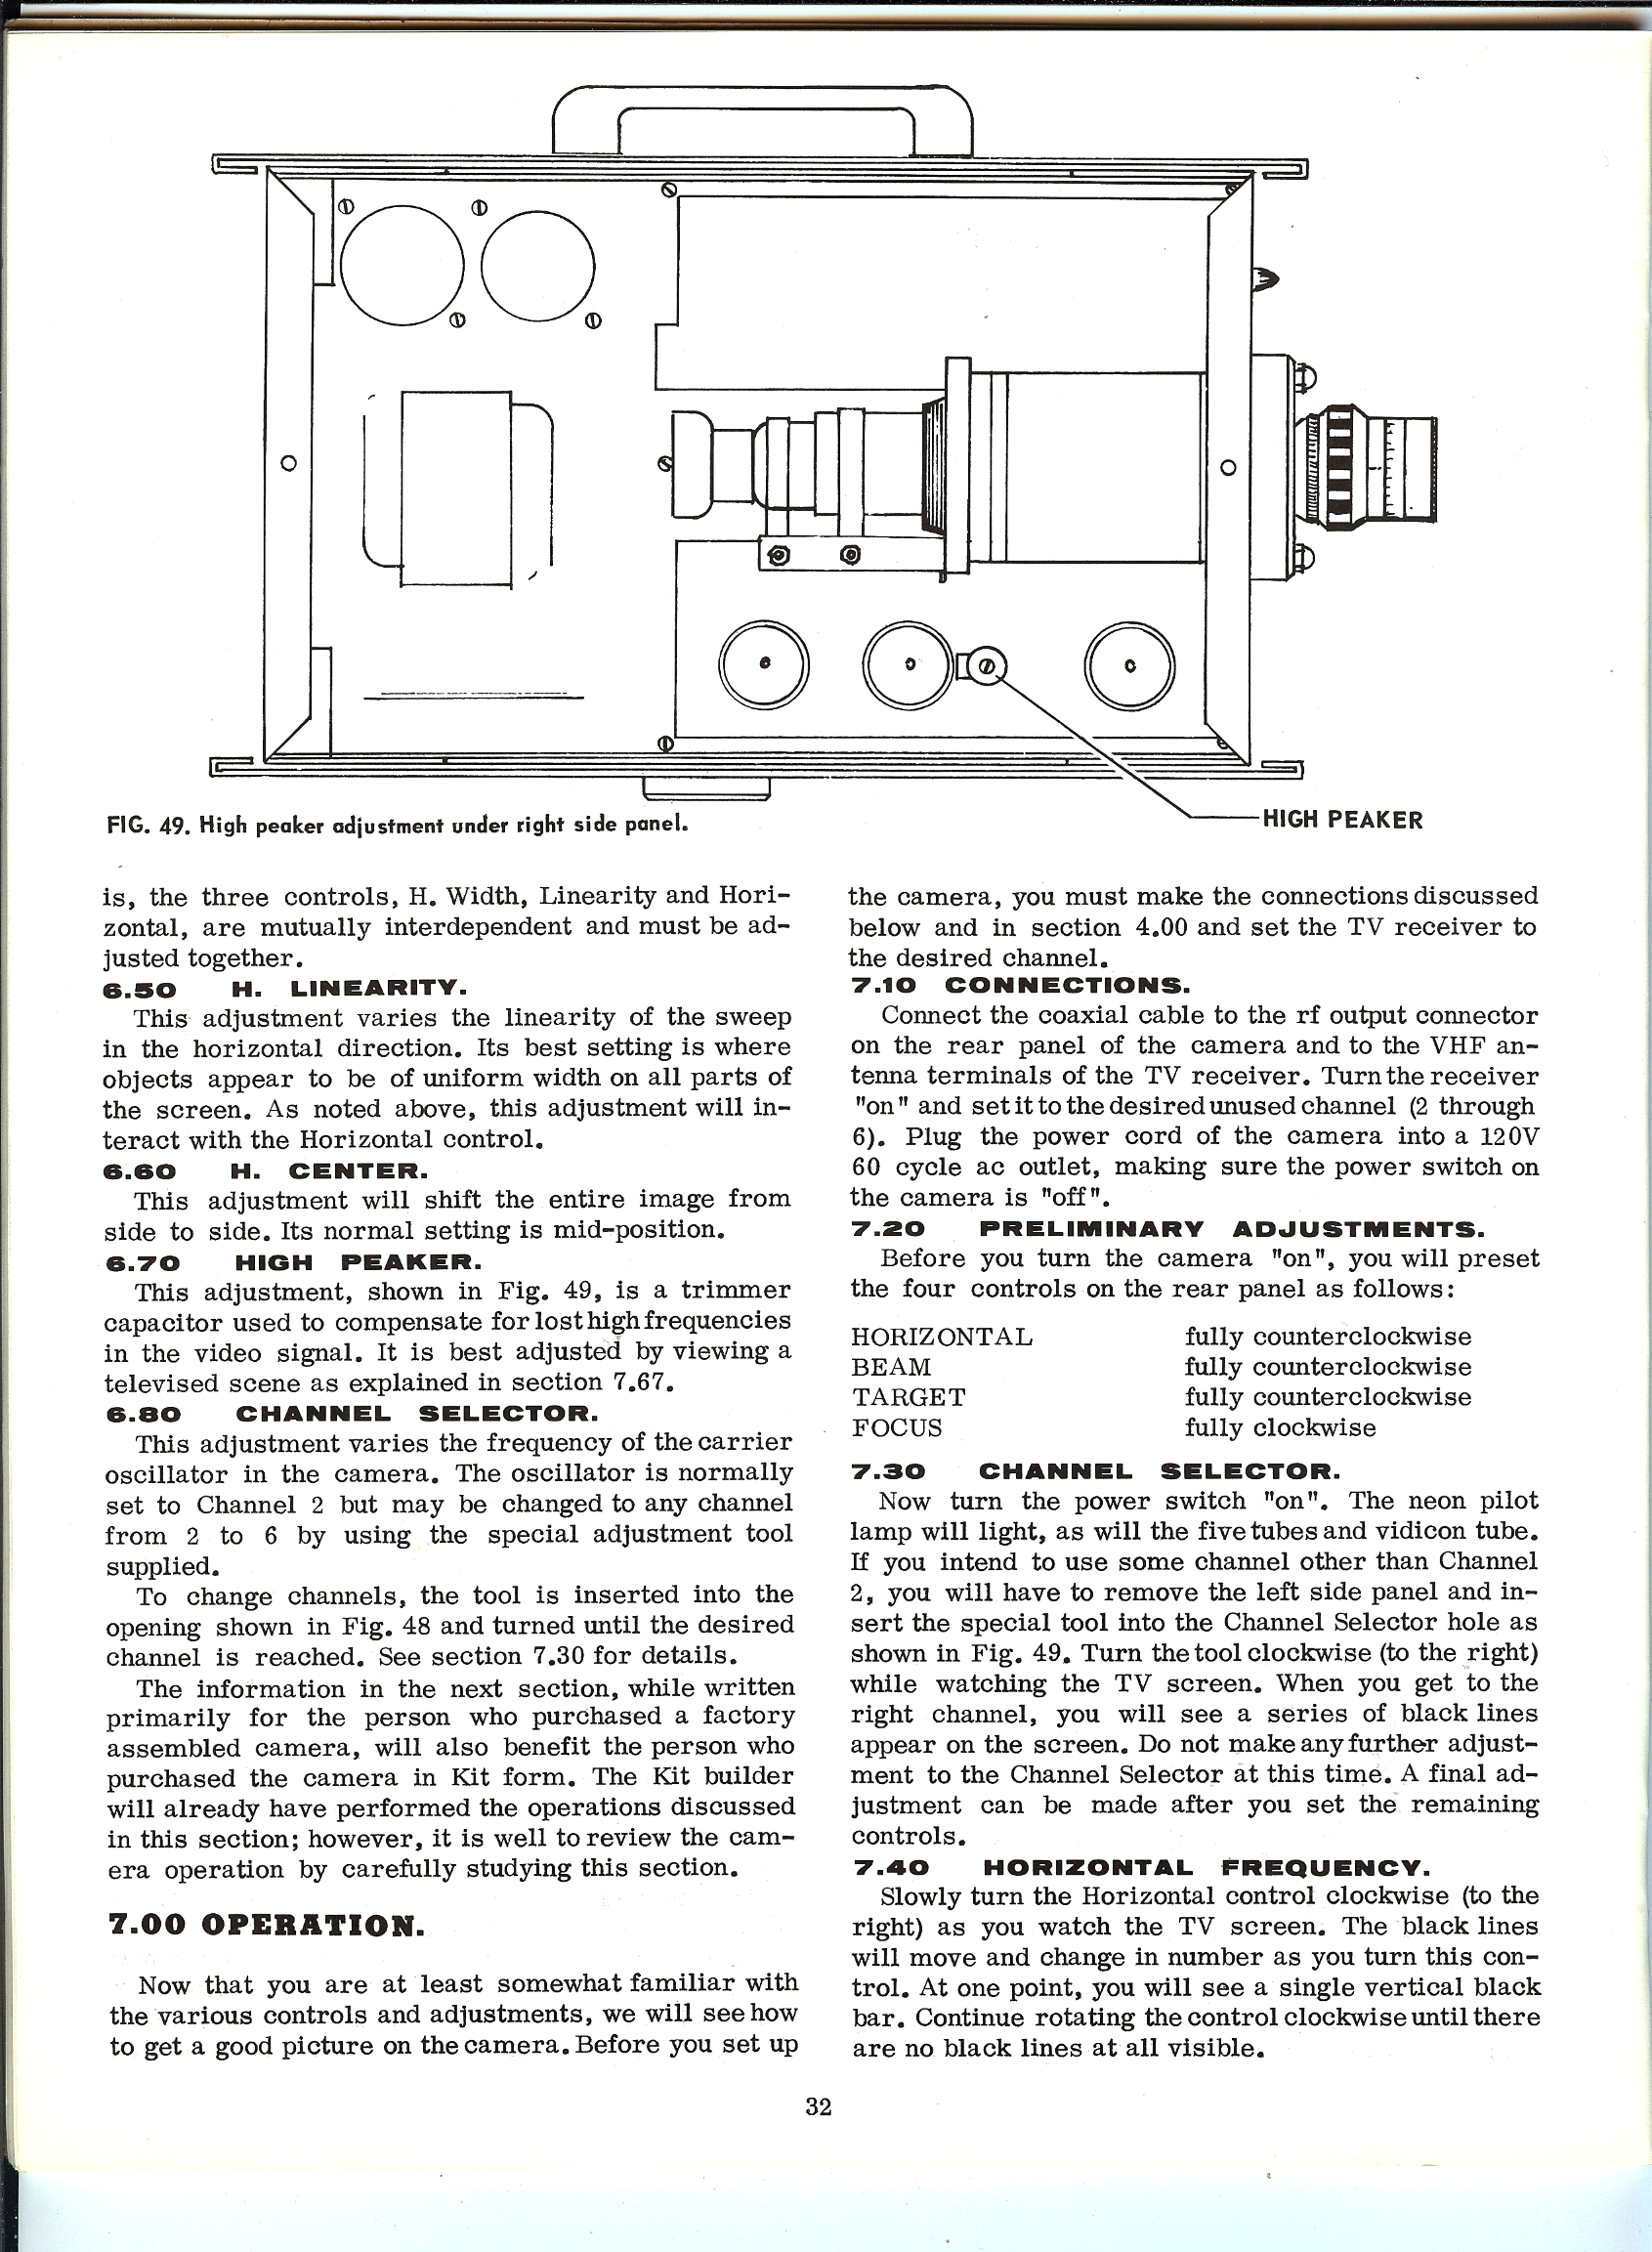 Conar 800 Camera Manual and Instructions SMECC